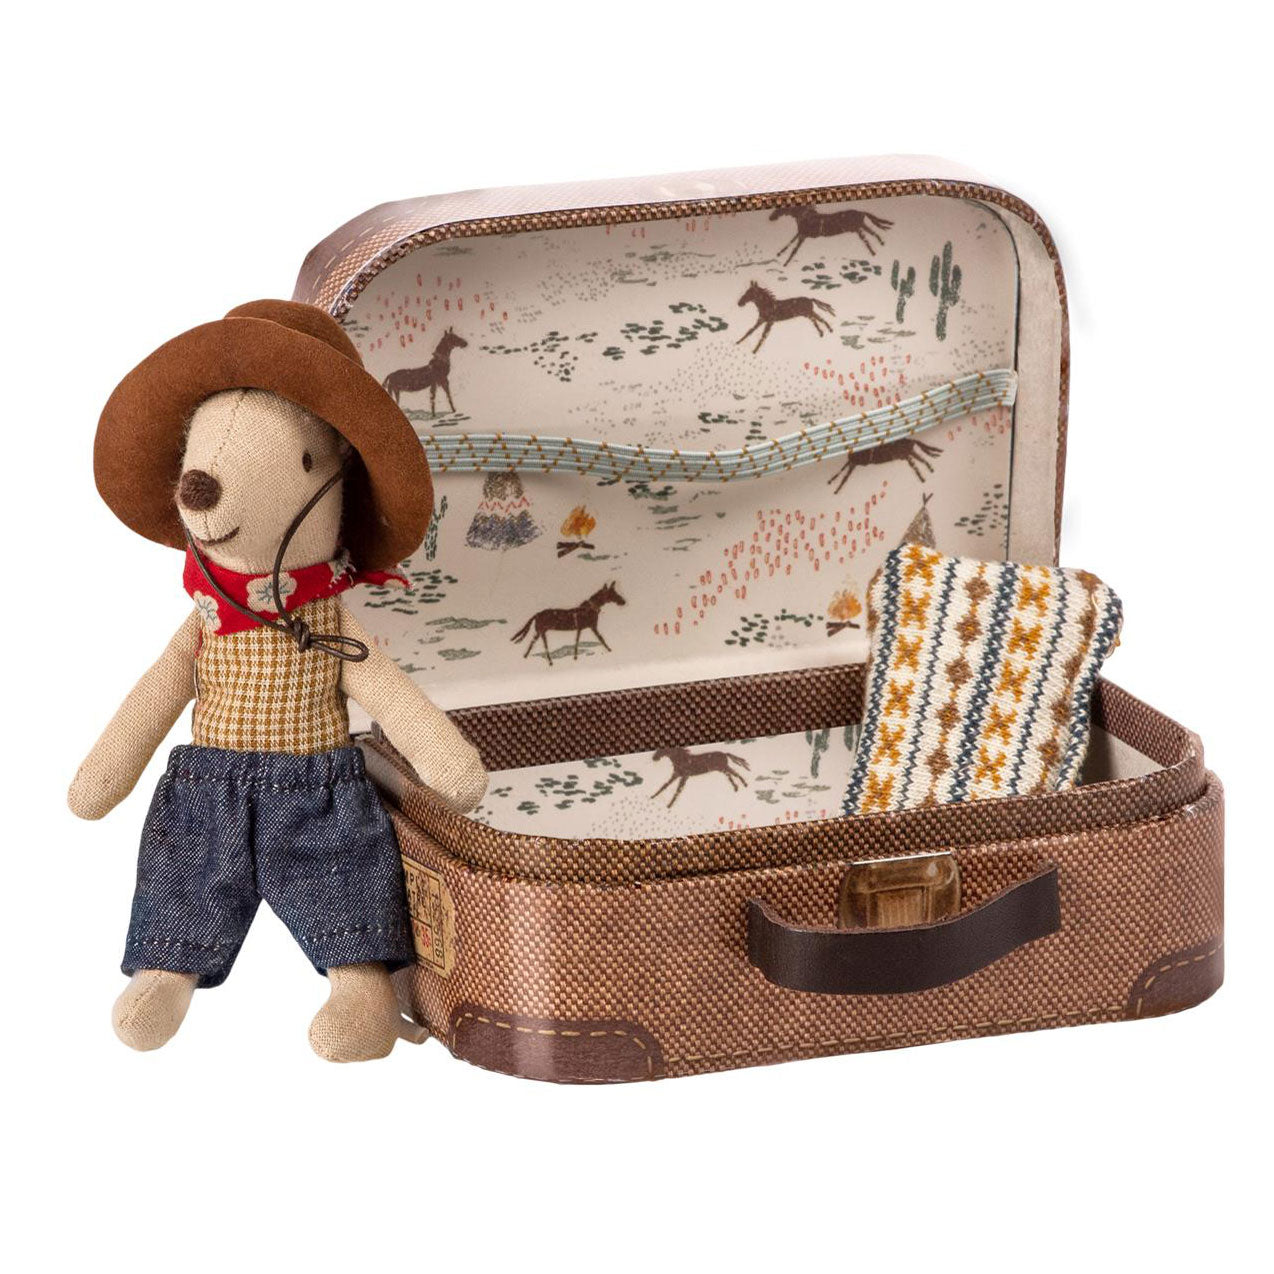 Cowboy little brother mouse with suitcase by Maileg at Bonjour Baby Baskets, luxury baby gifts